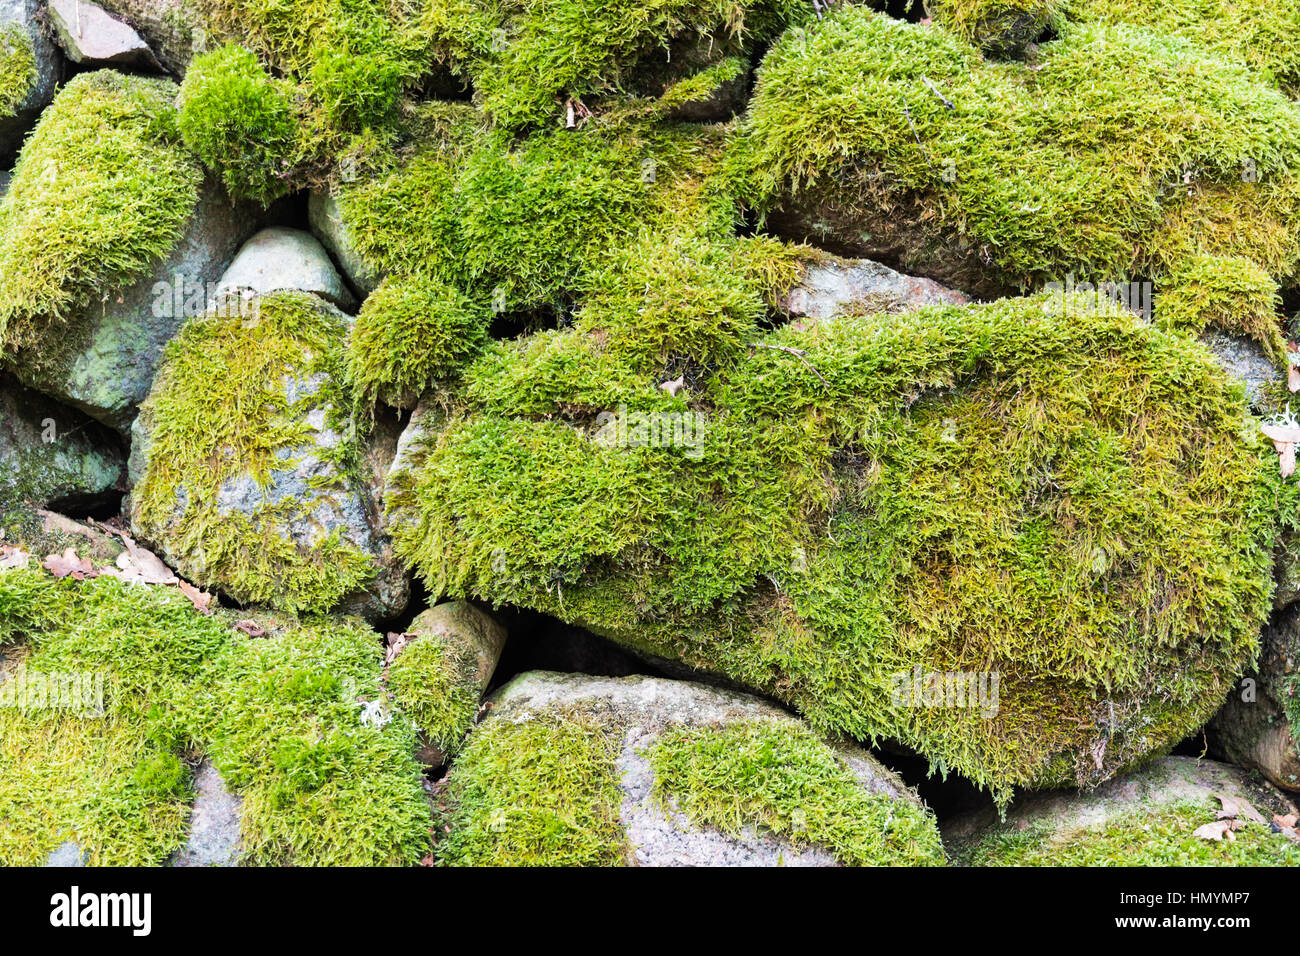 Detail of a moss-grown stone wall fence - Stock Image